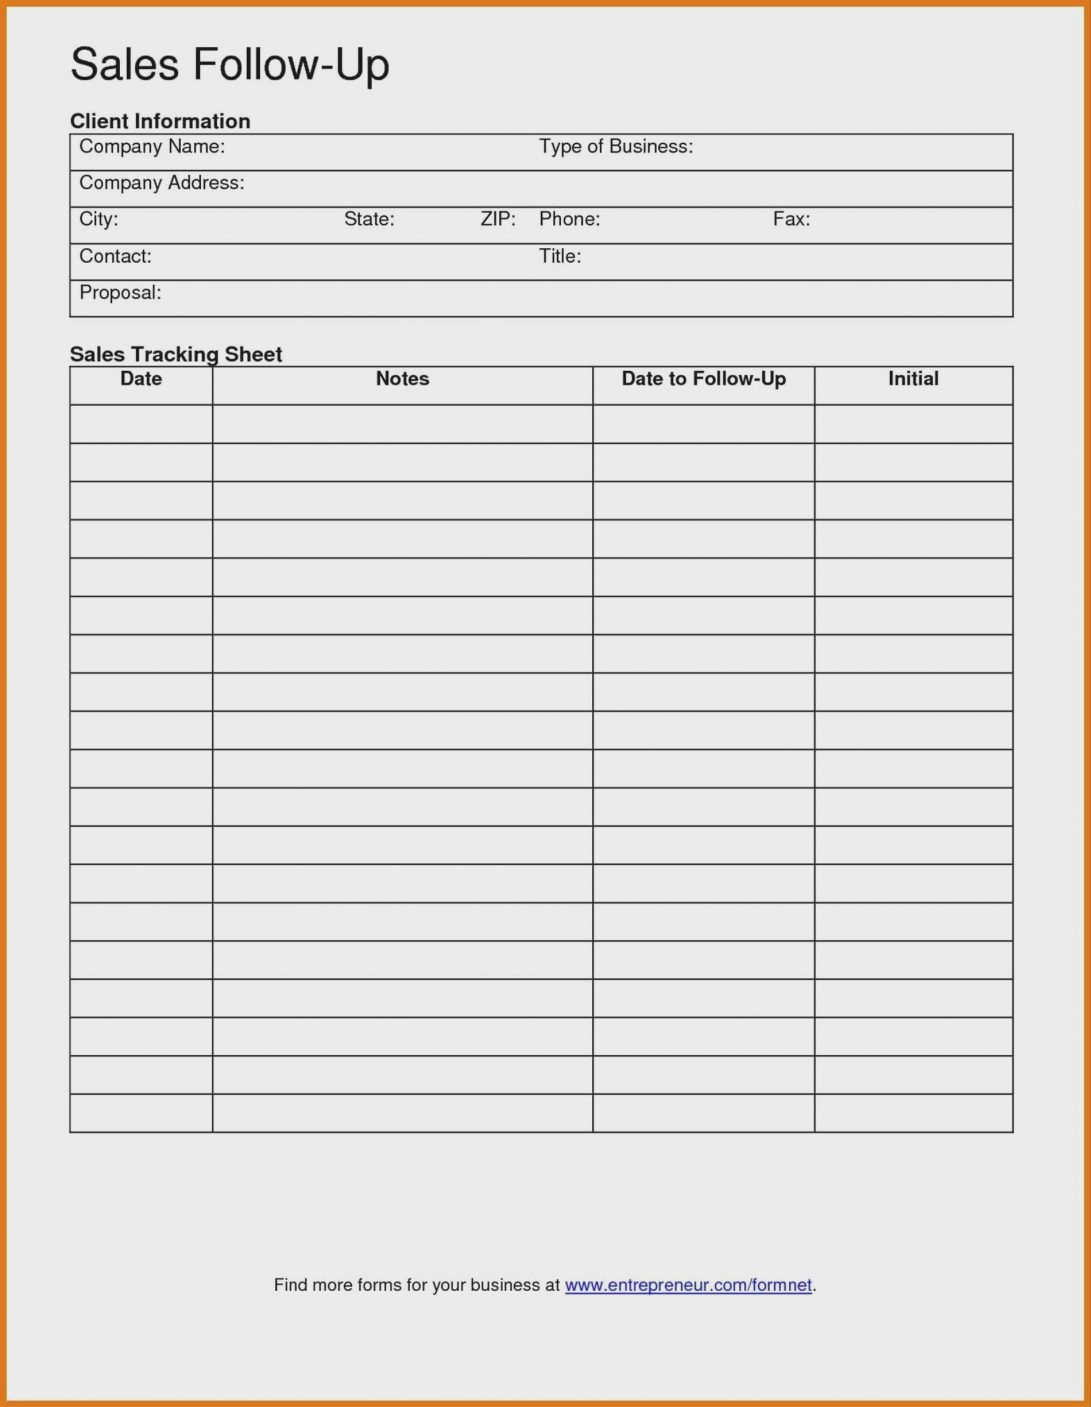 Sales Lead Form Template Sheet Eliolera Together With Forms With Sales Lead Template Forms